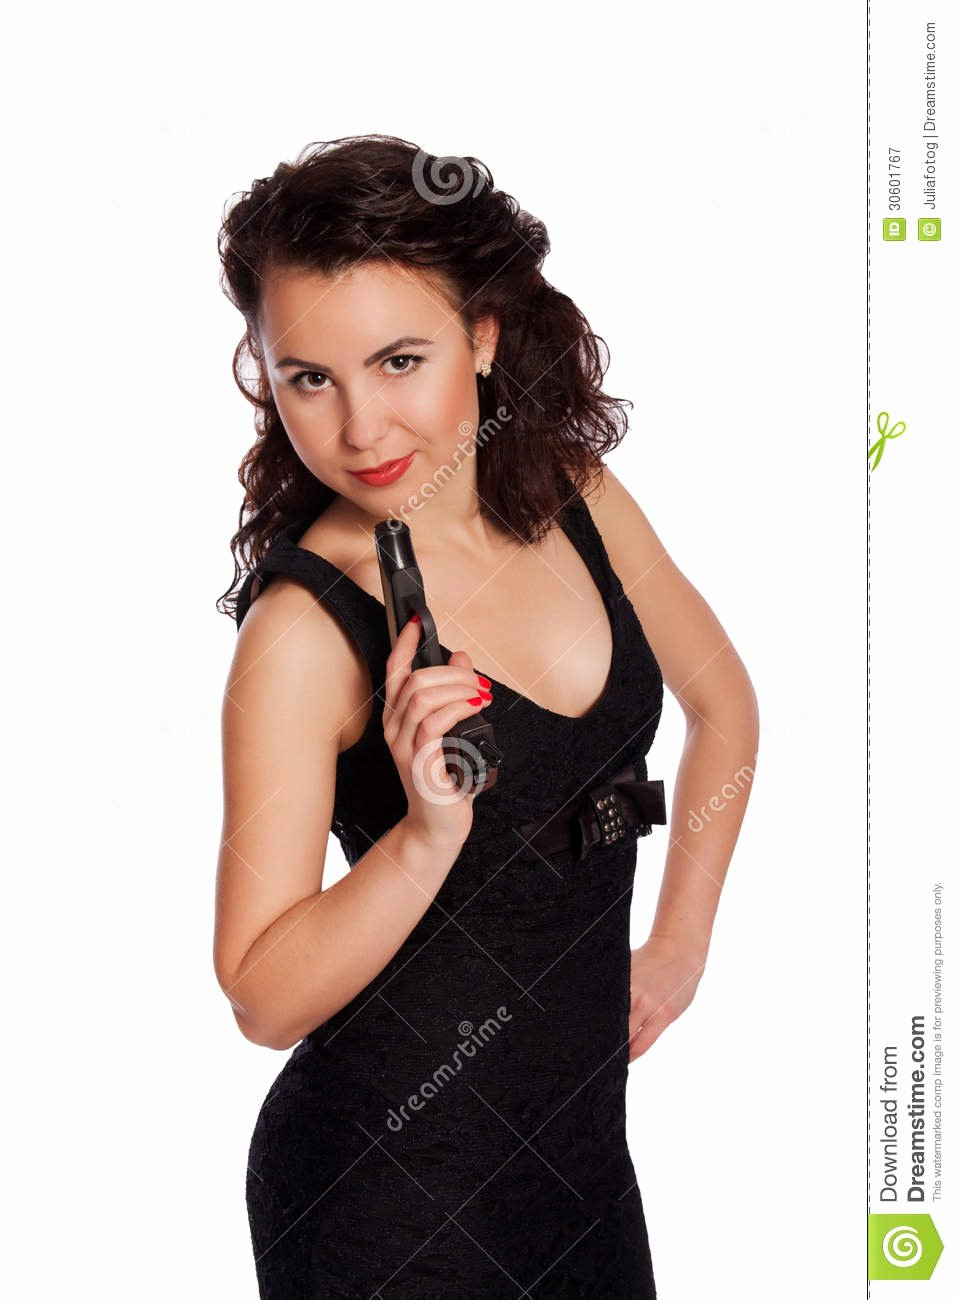 Free Sexy Women Photos Lovely Y Woman In Black Dress with A Gun Royalty Free Stock